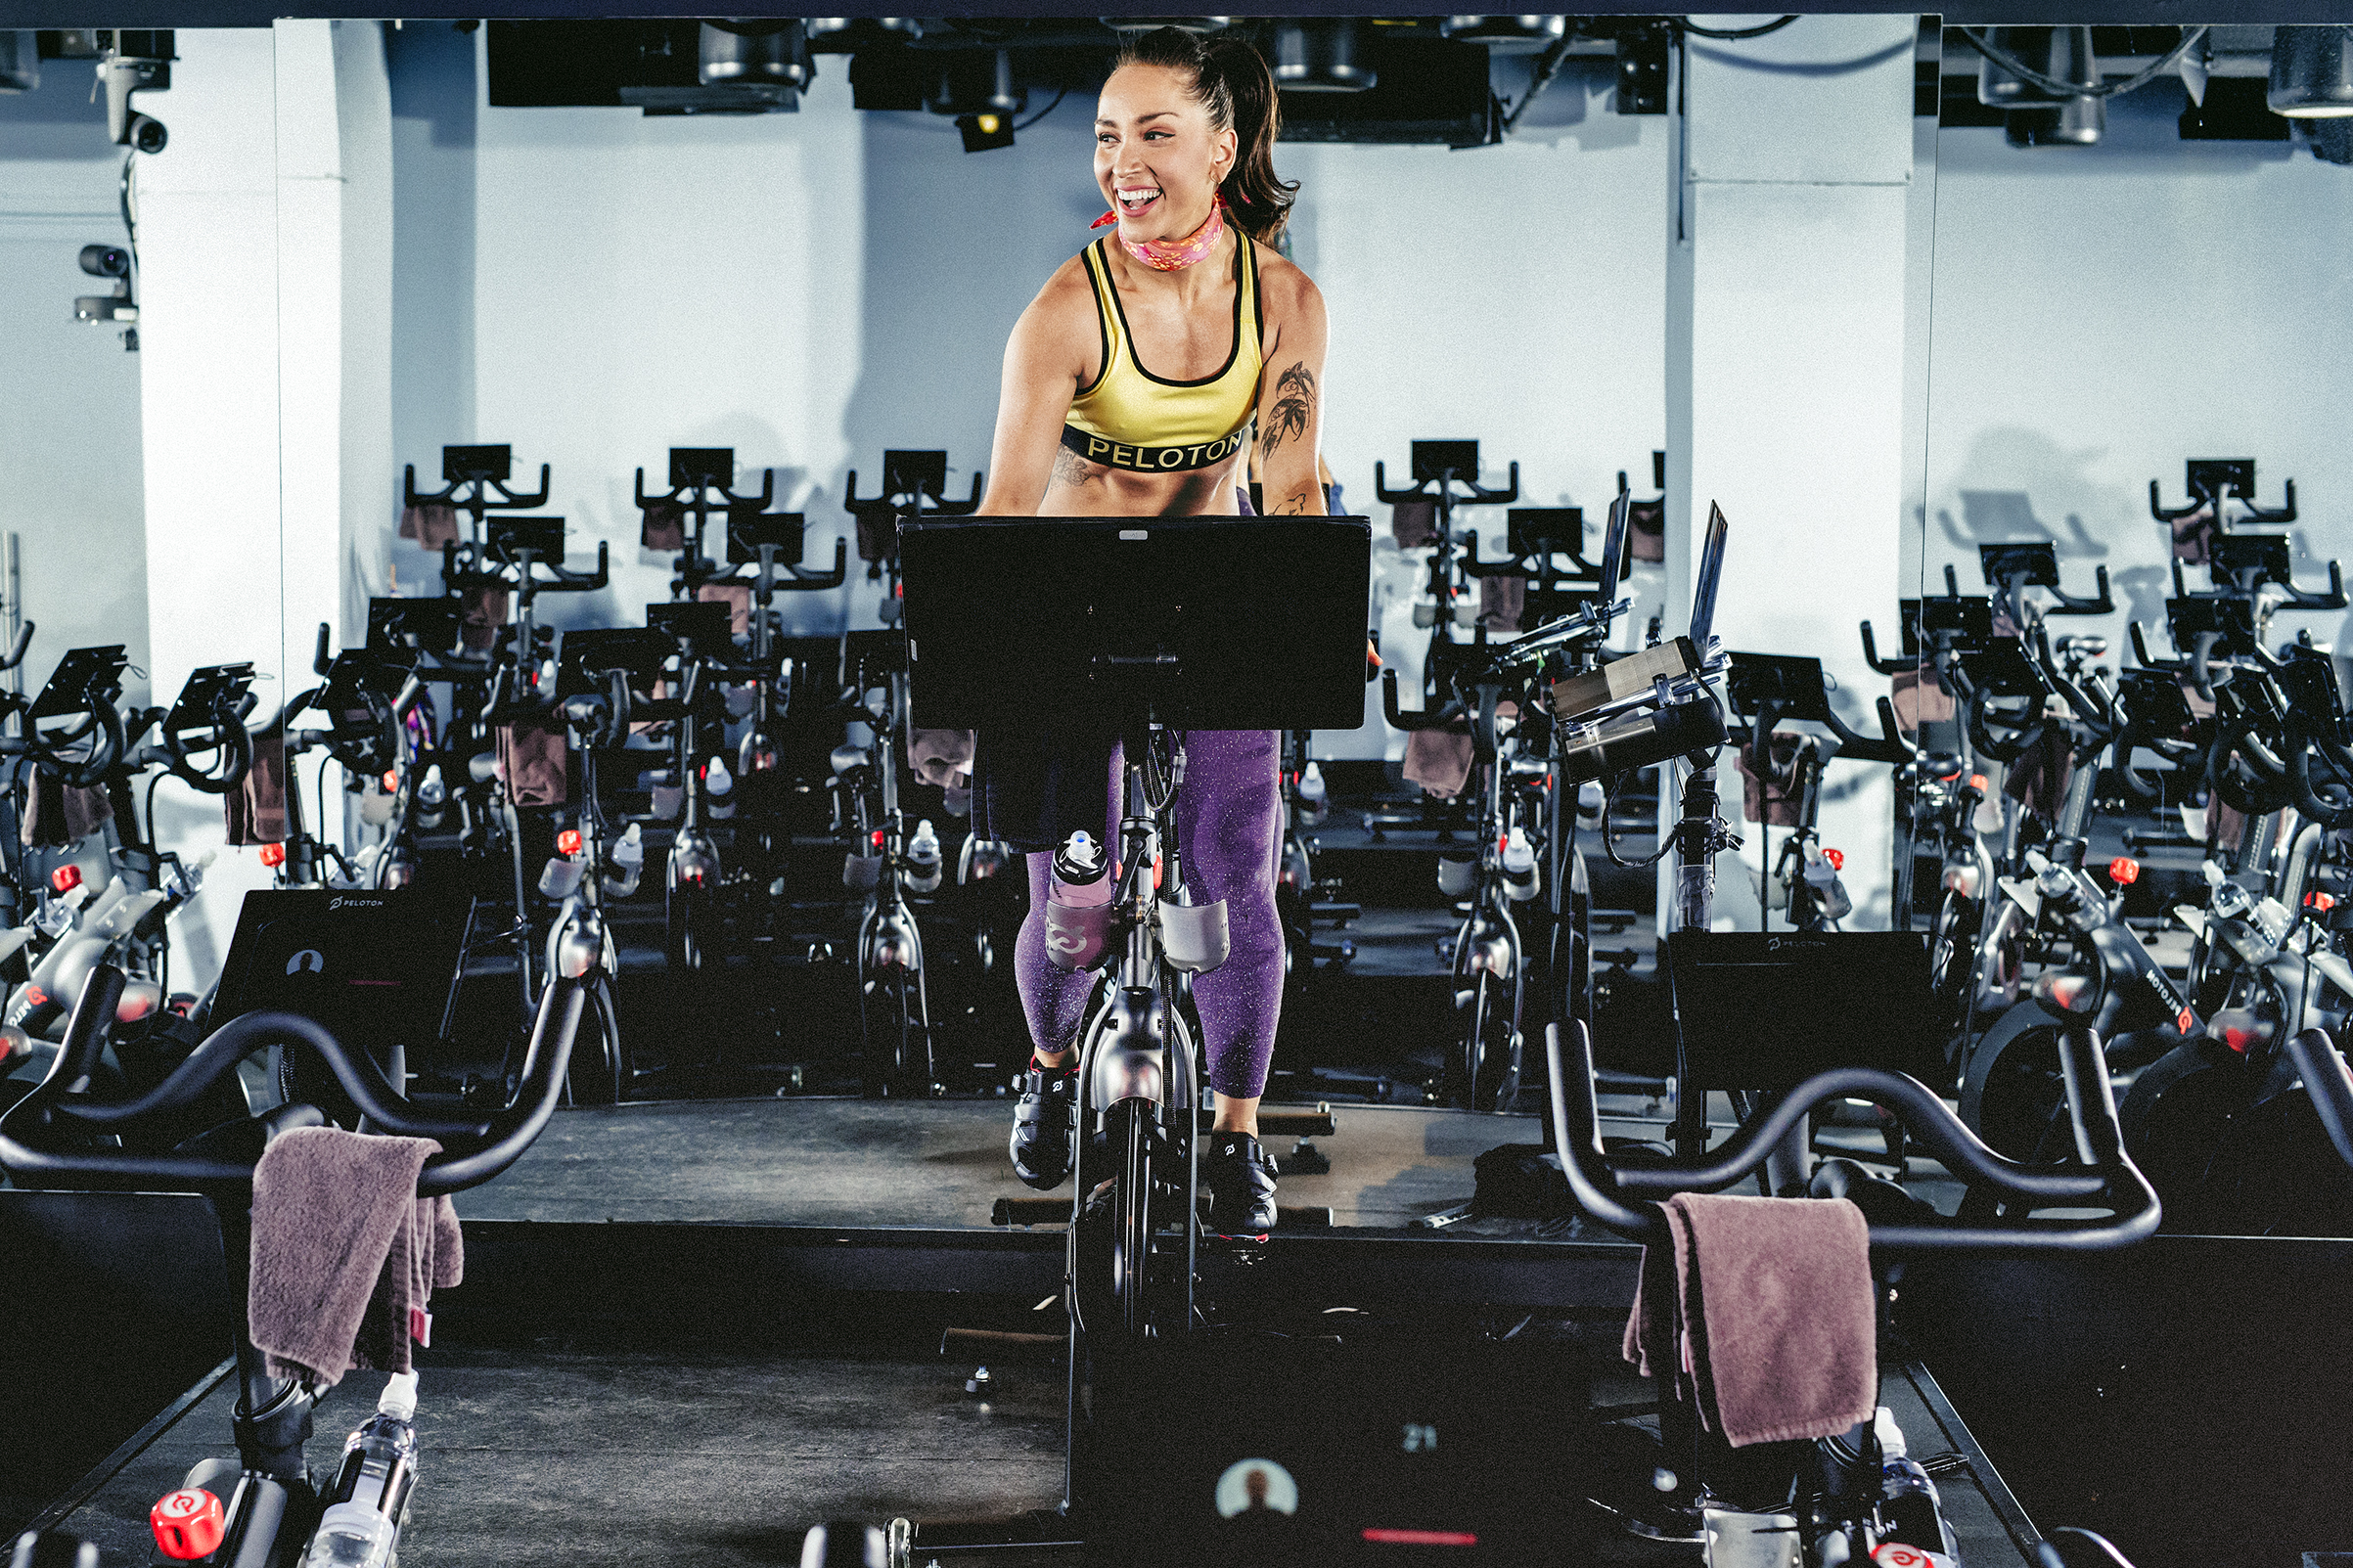 Robin Arzon, Peloton's VP of fitness programming, has a loyal following of fans on social media